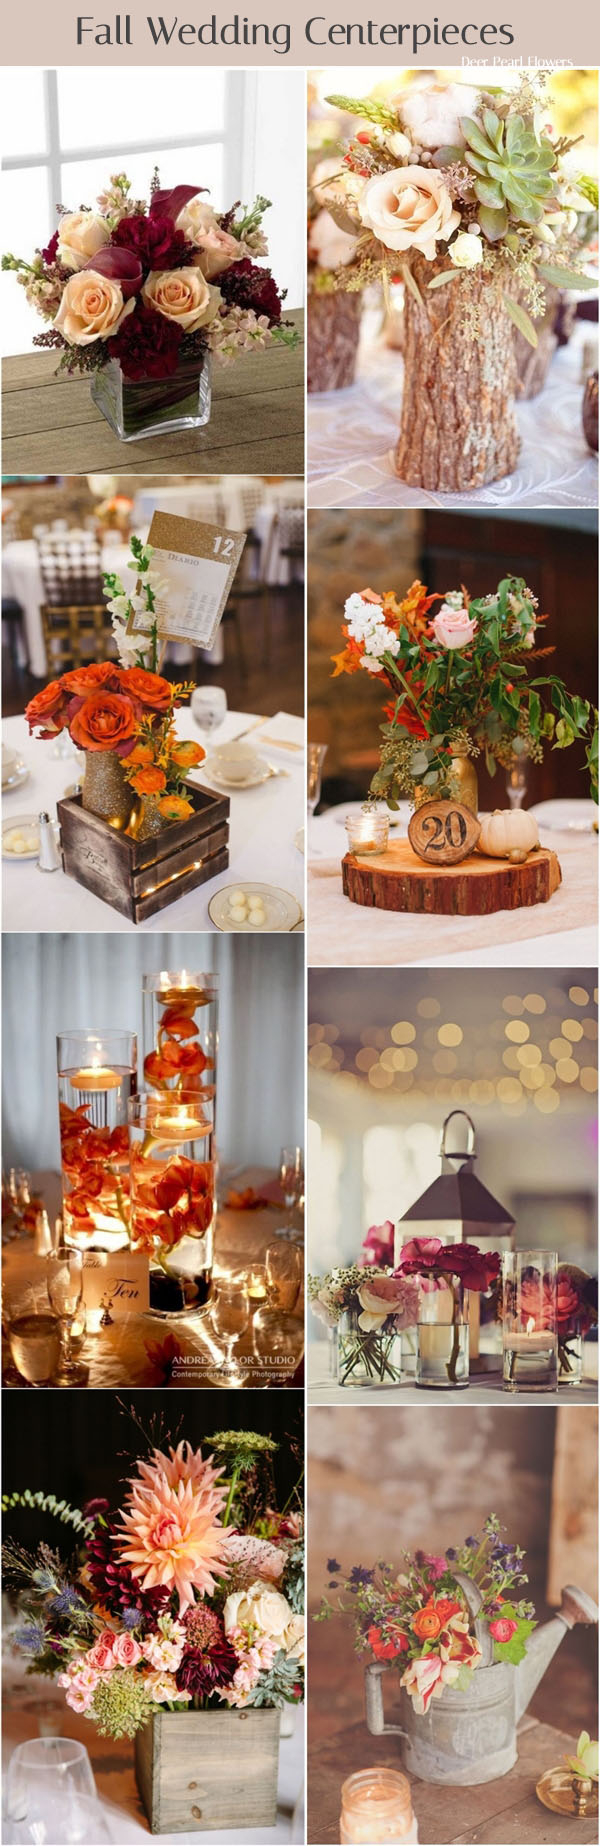 Fall Wedding Decoration Ideas 76 Of The Best Fall Wedding Ideas For 2019 Deer Pearl Flowers